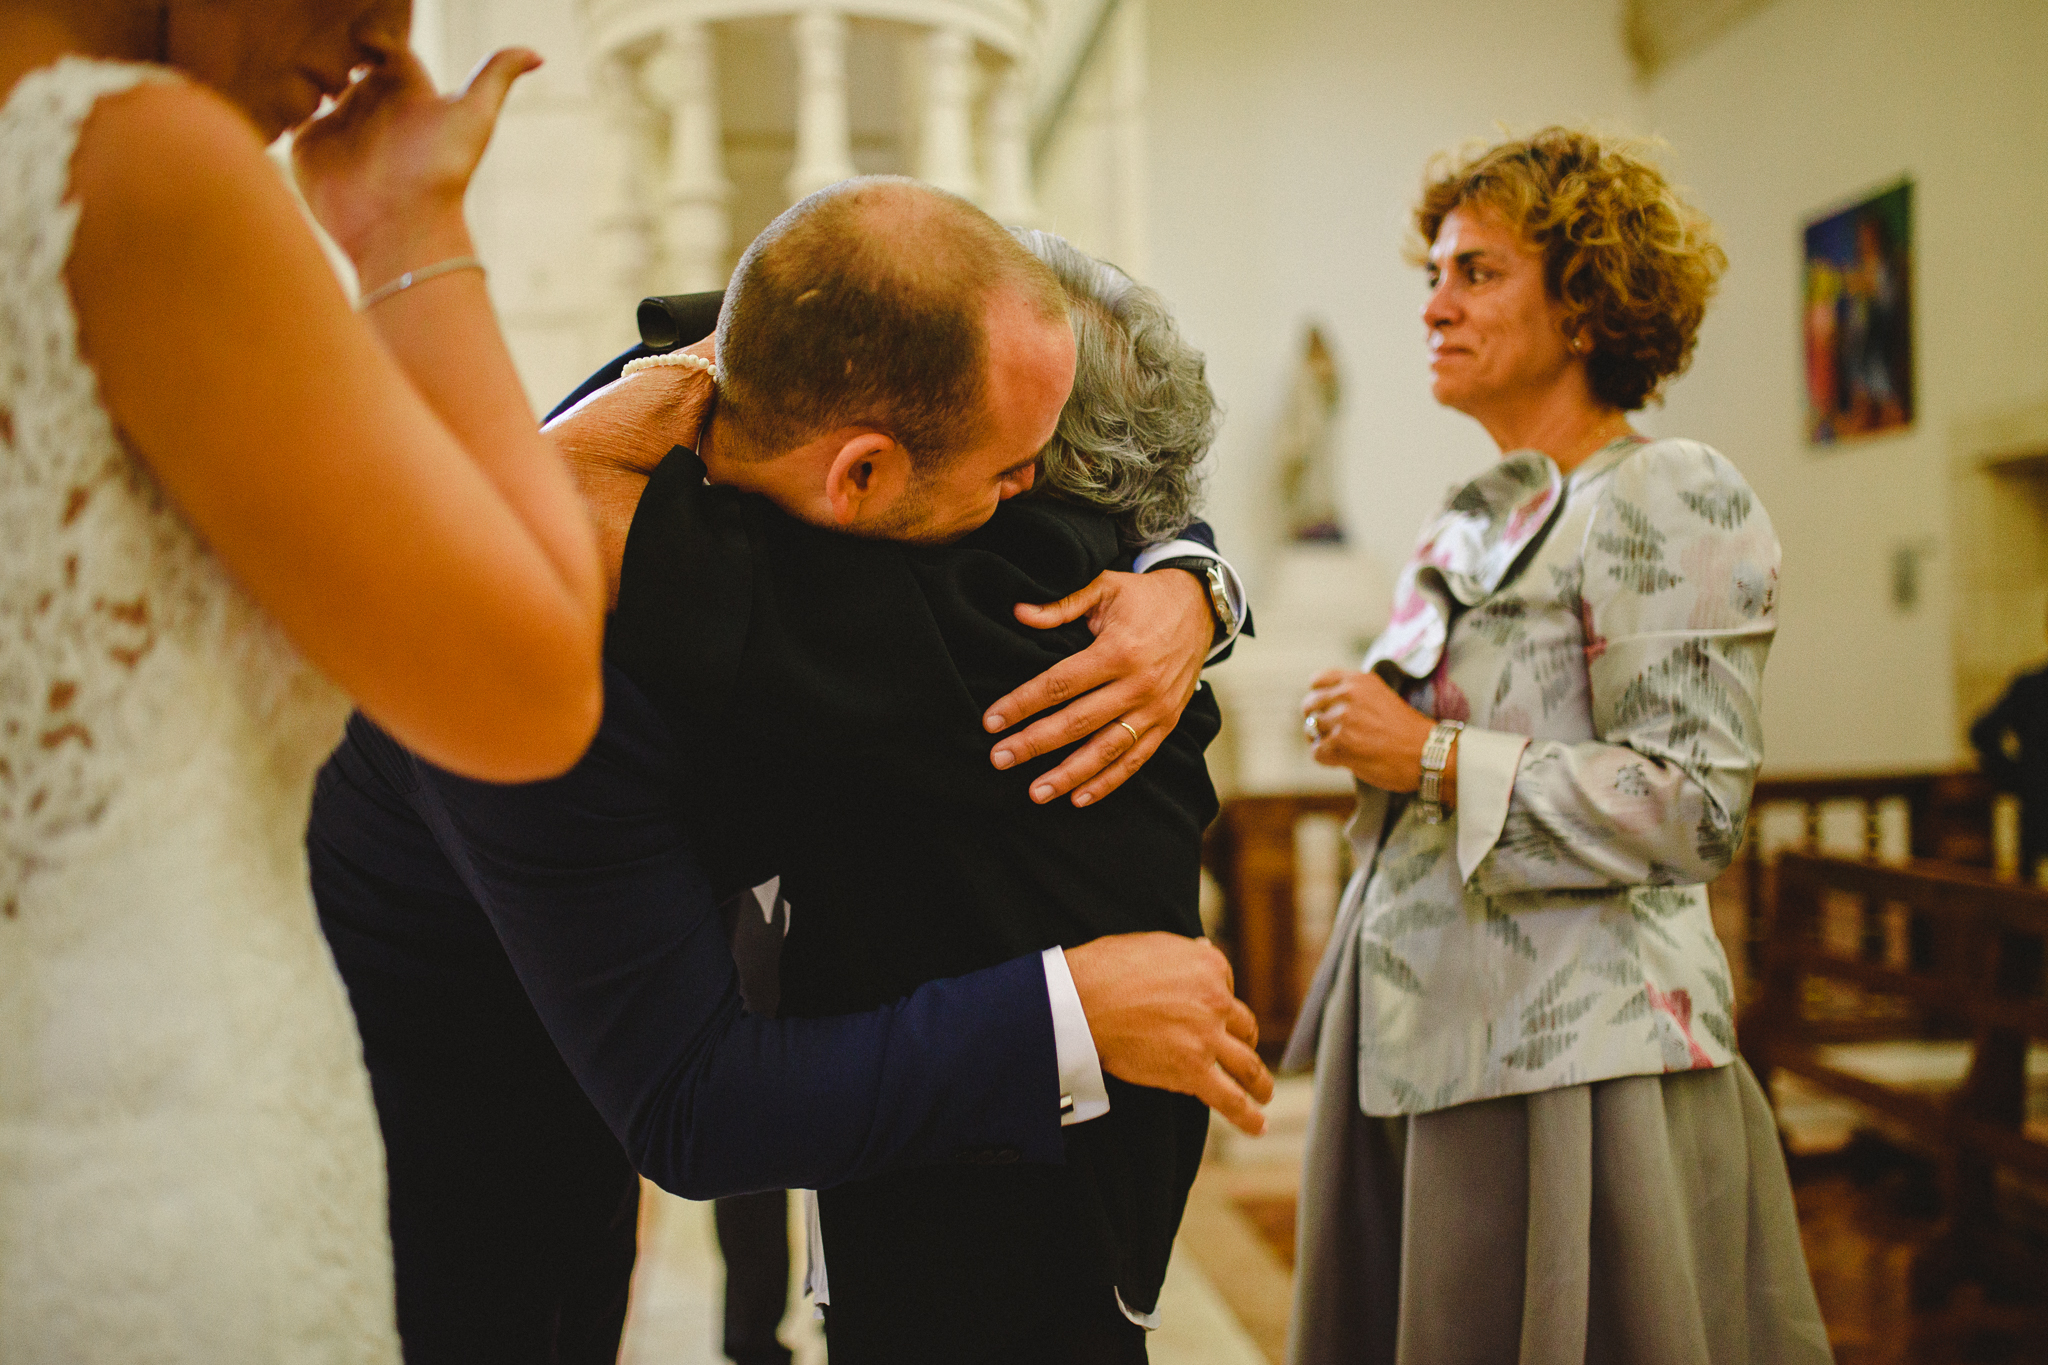 Groom hugging his grandmother during ceremony